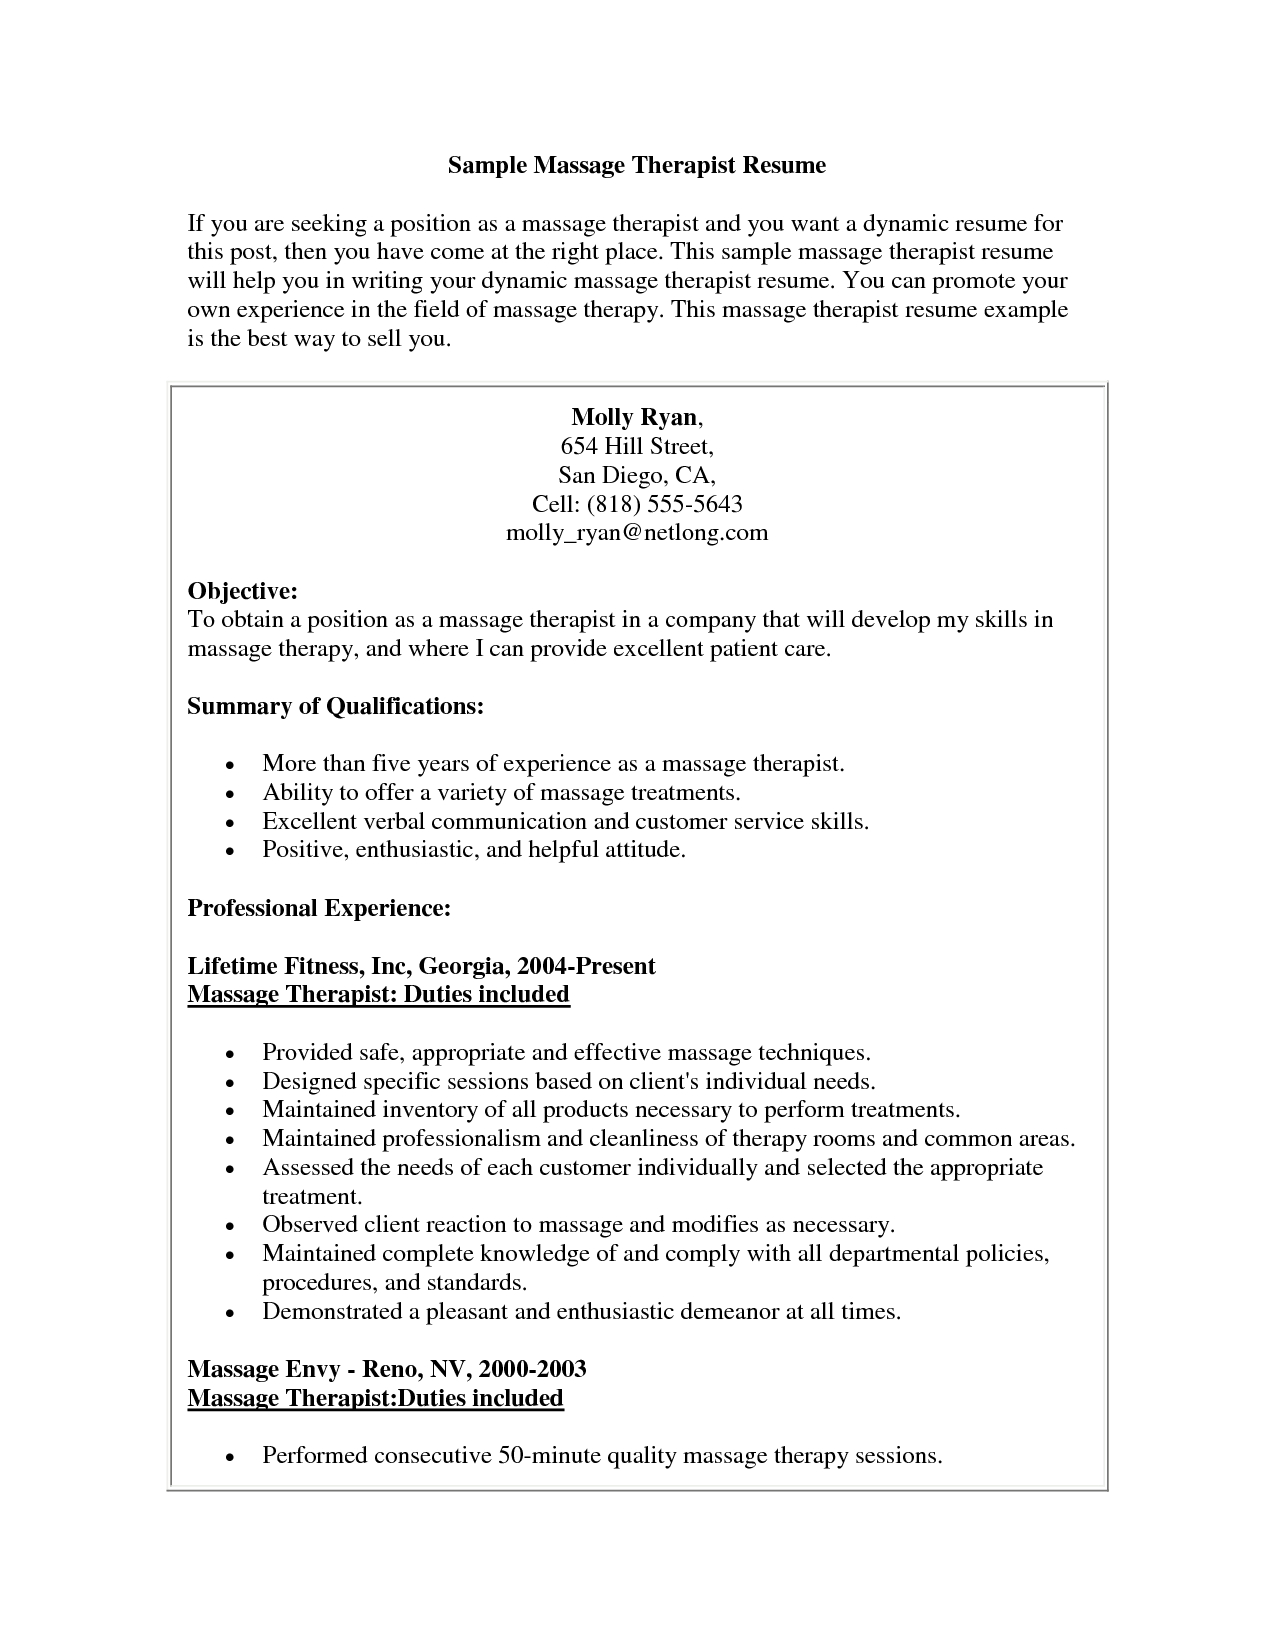 Therapist Resume Examples Massage Therapist Resume Sample Massage Therapist Resume